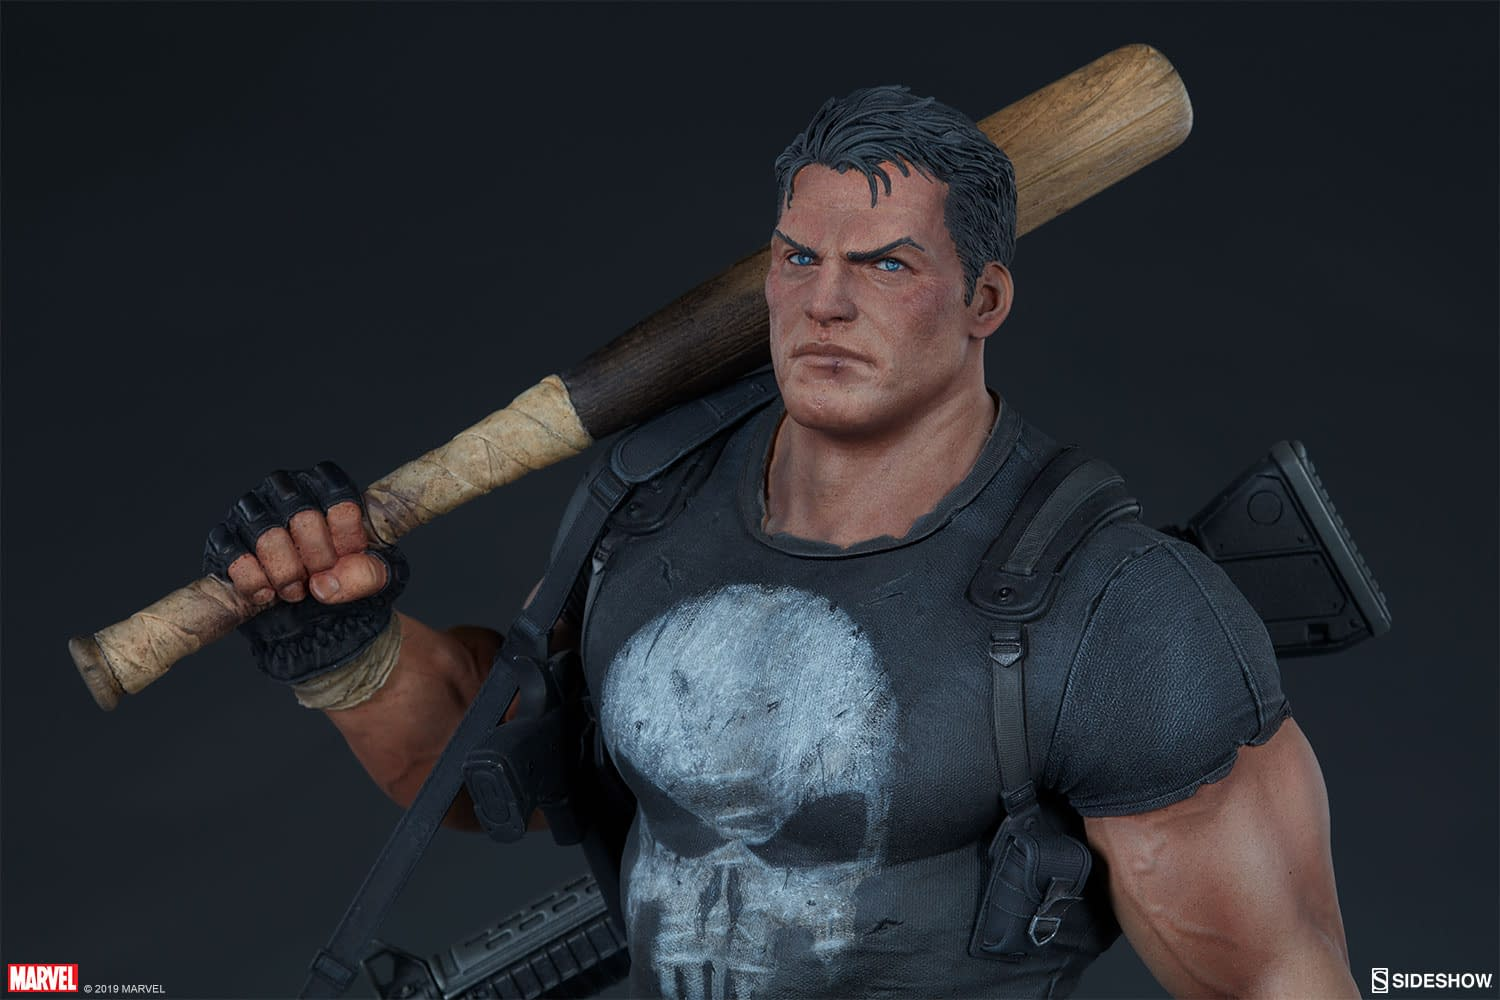 Sideshow Collectibles Punisher Premium Format Figure 3